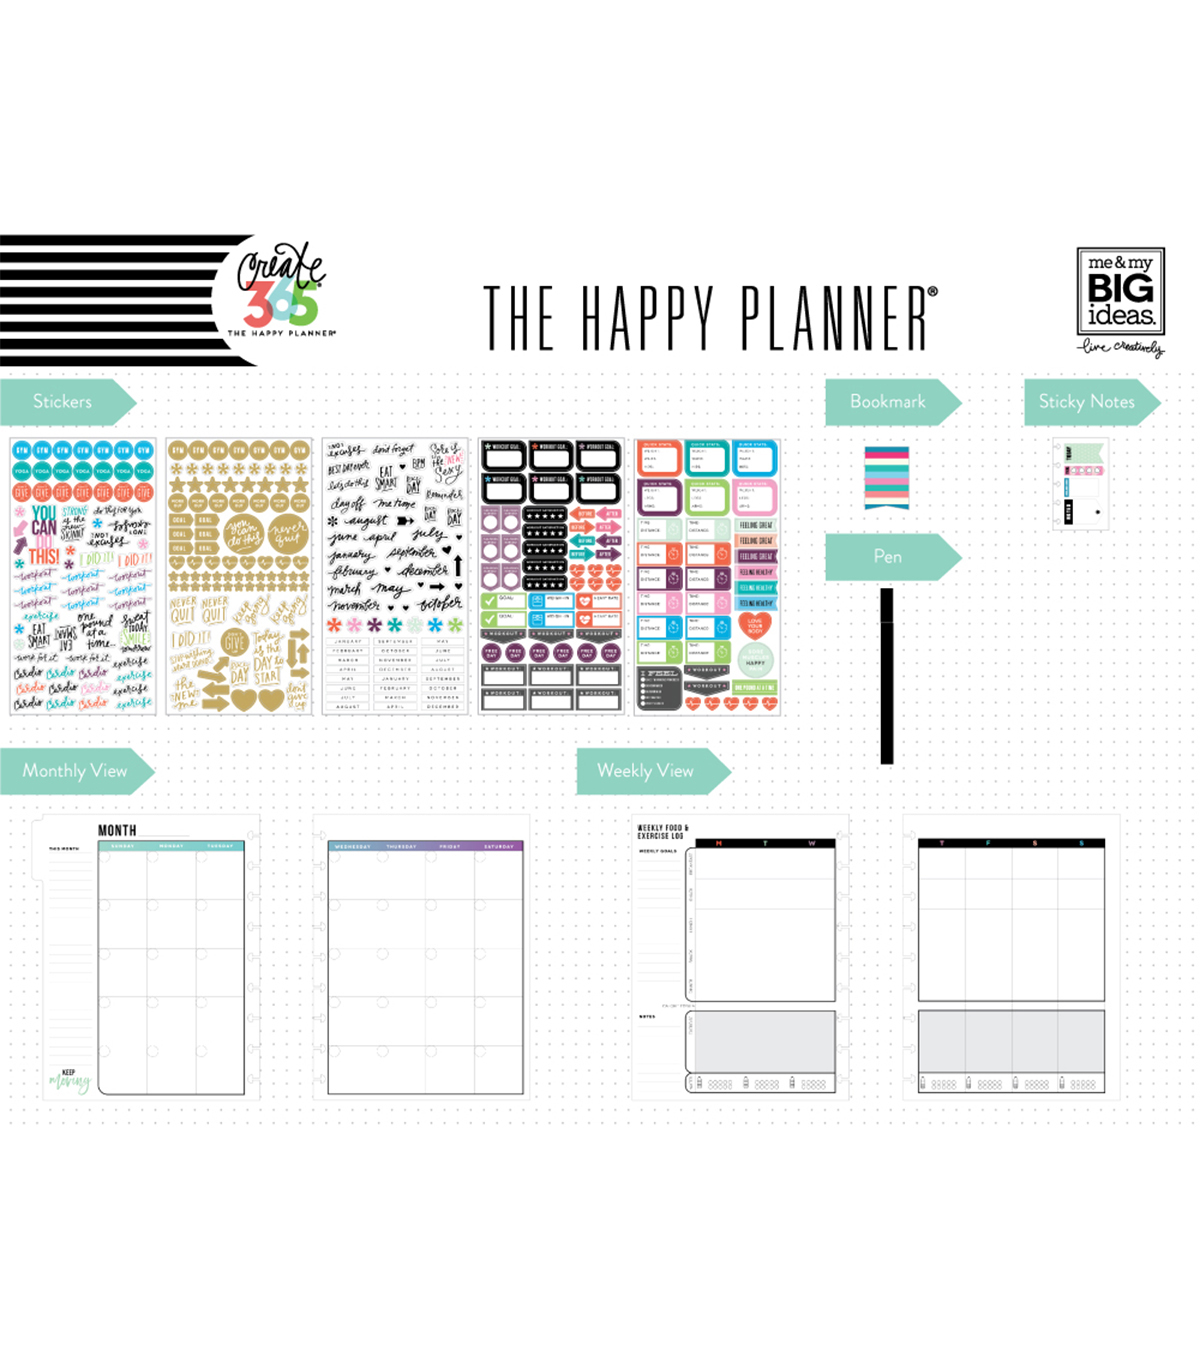 the happy planner classic planner box kit fitness joann